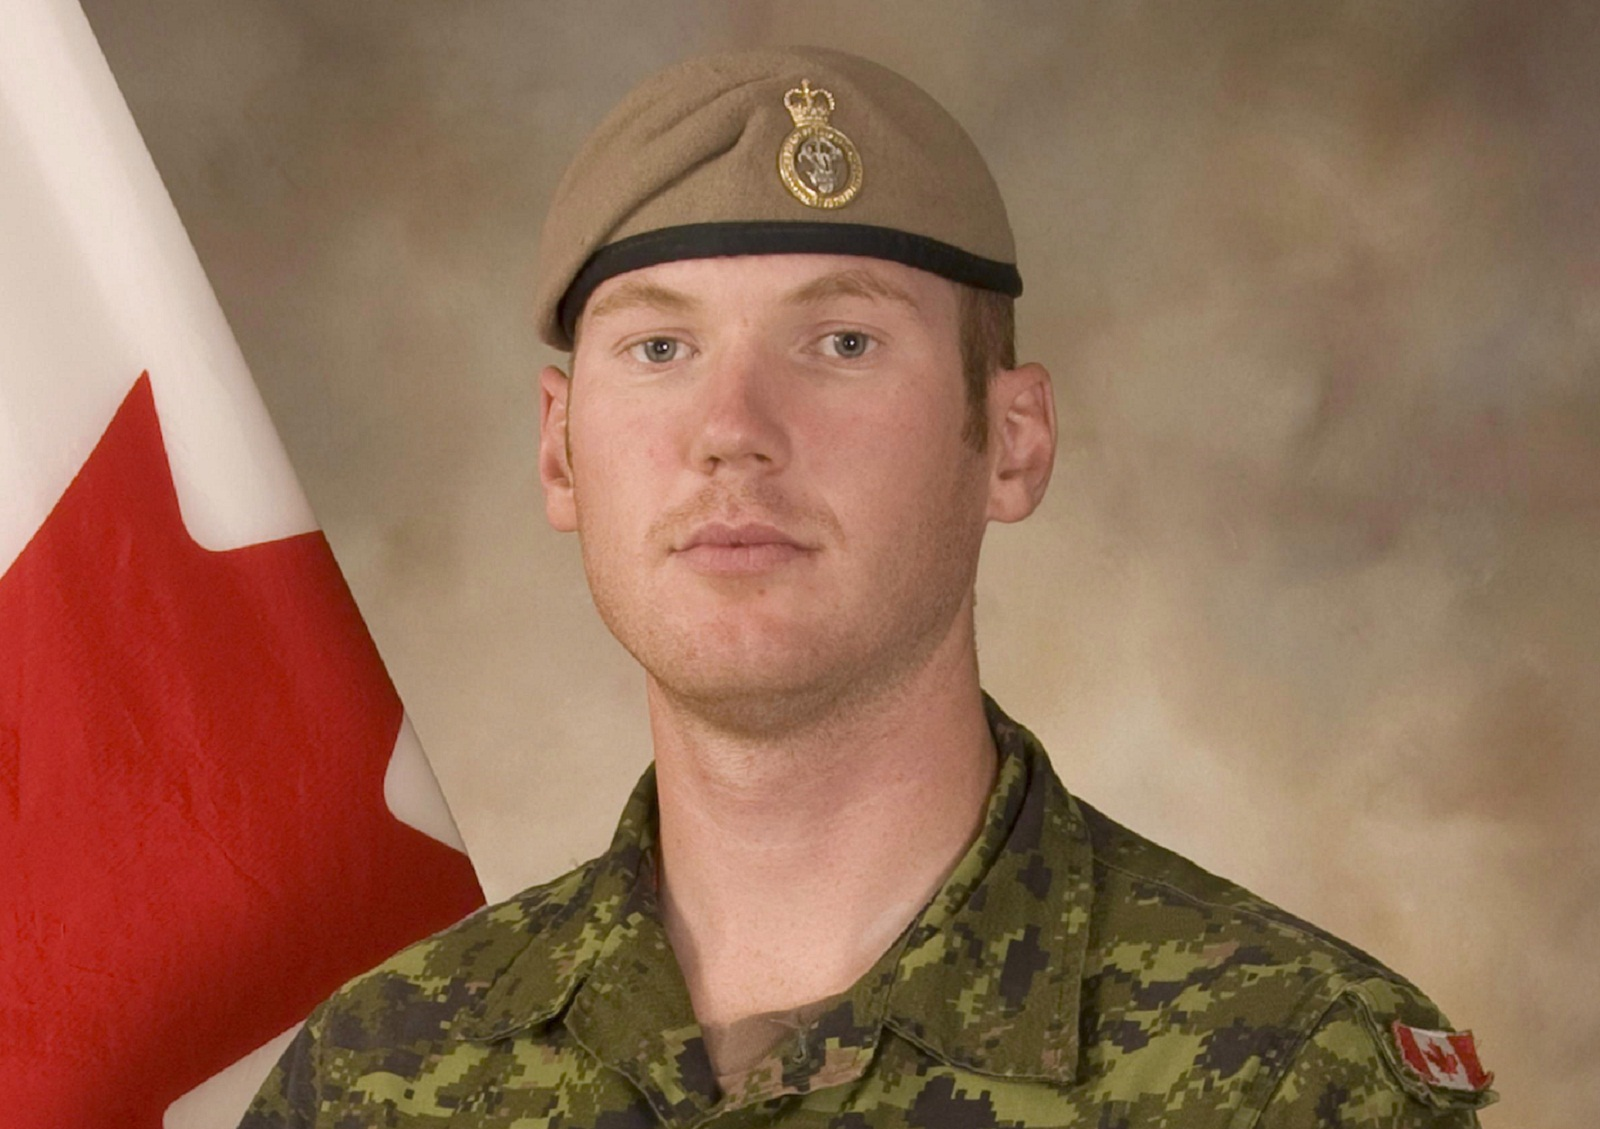 Sgt. Andrew Doiron, killed by friendly fire in Iraq, back in Canada